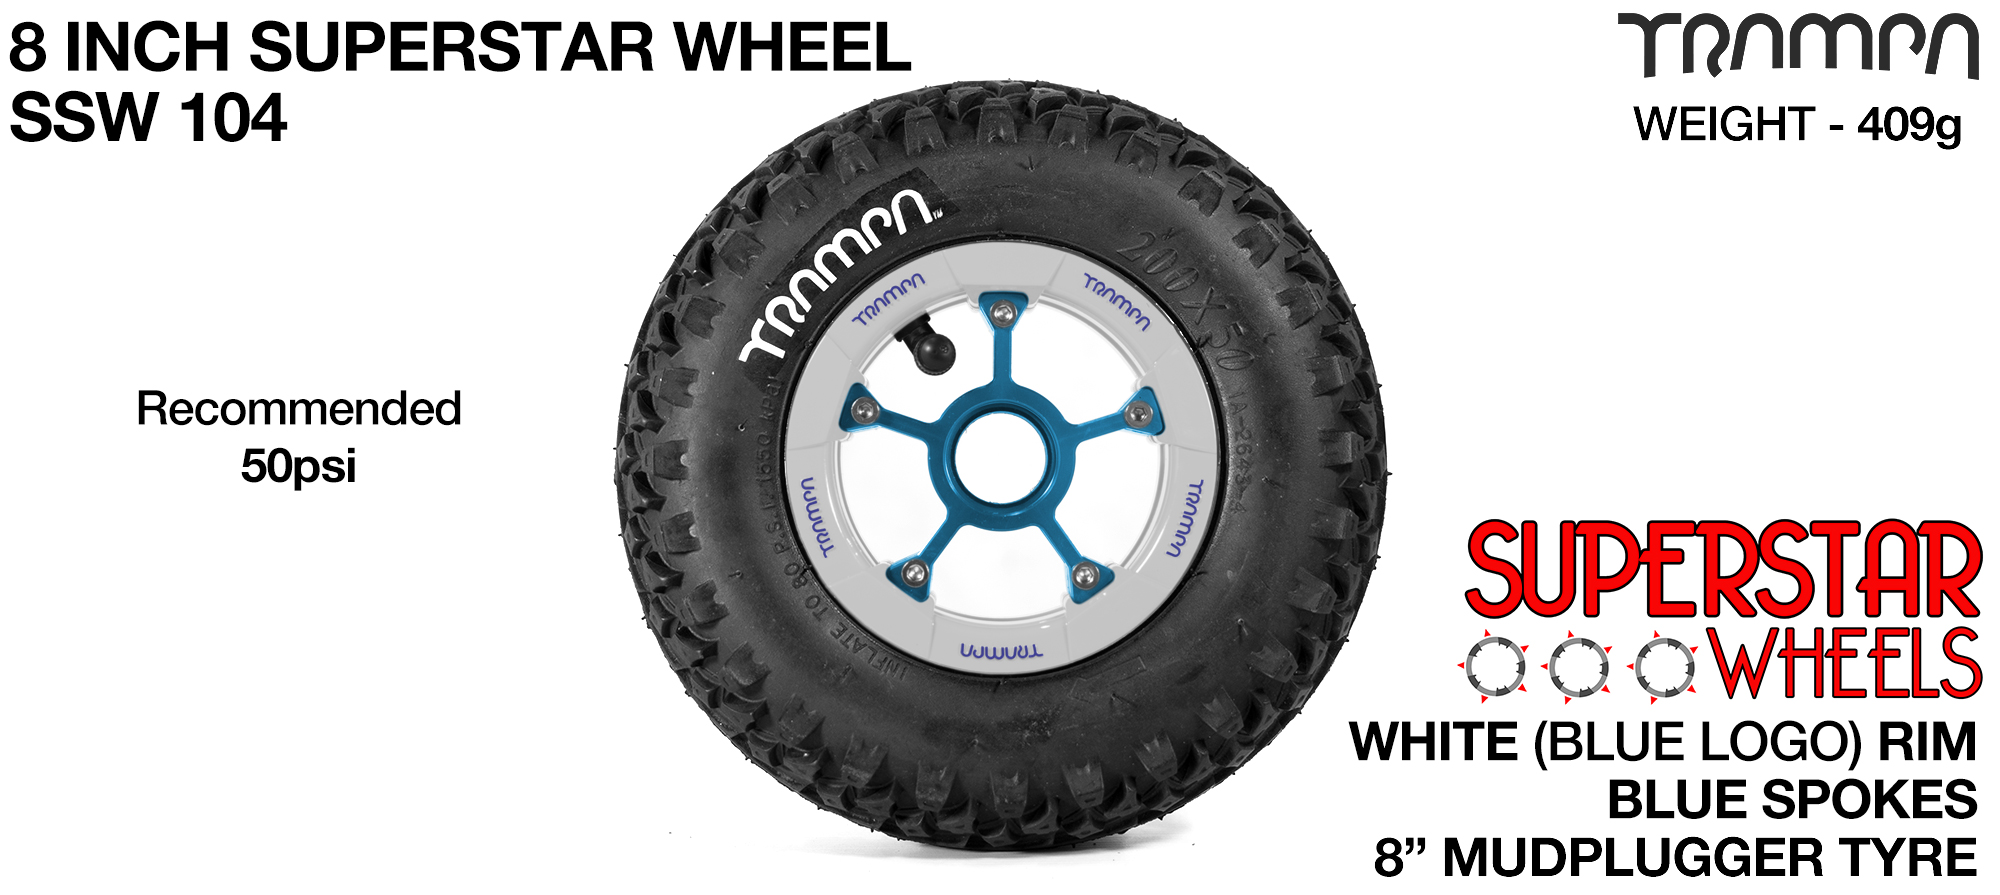 Superstar wheel -  White Rim and Blue Logos with Blue Anodised Spokes and Trampa Deep Tyre - 8 inch wheel